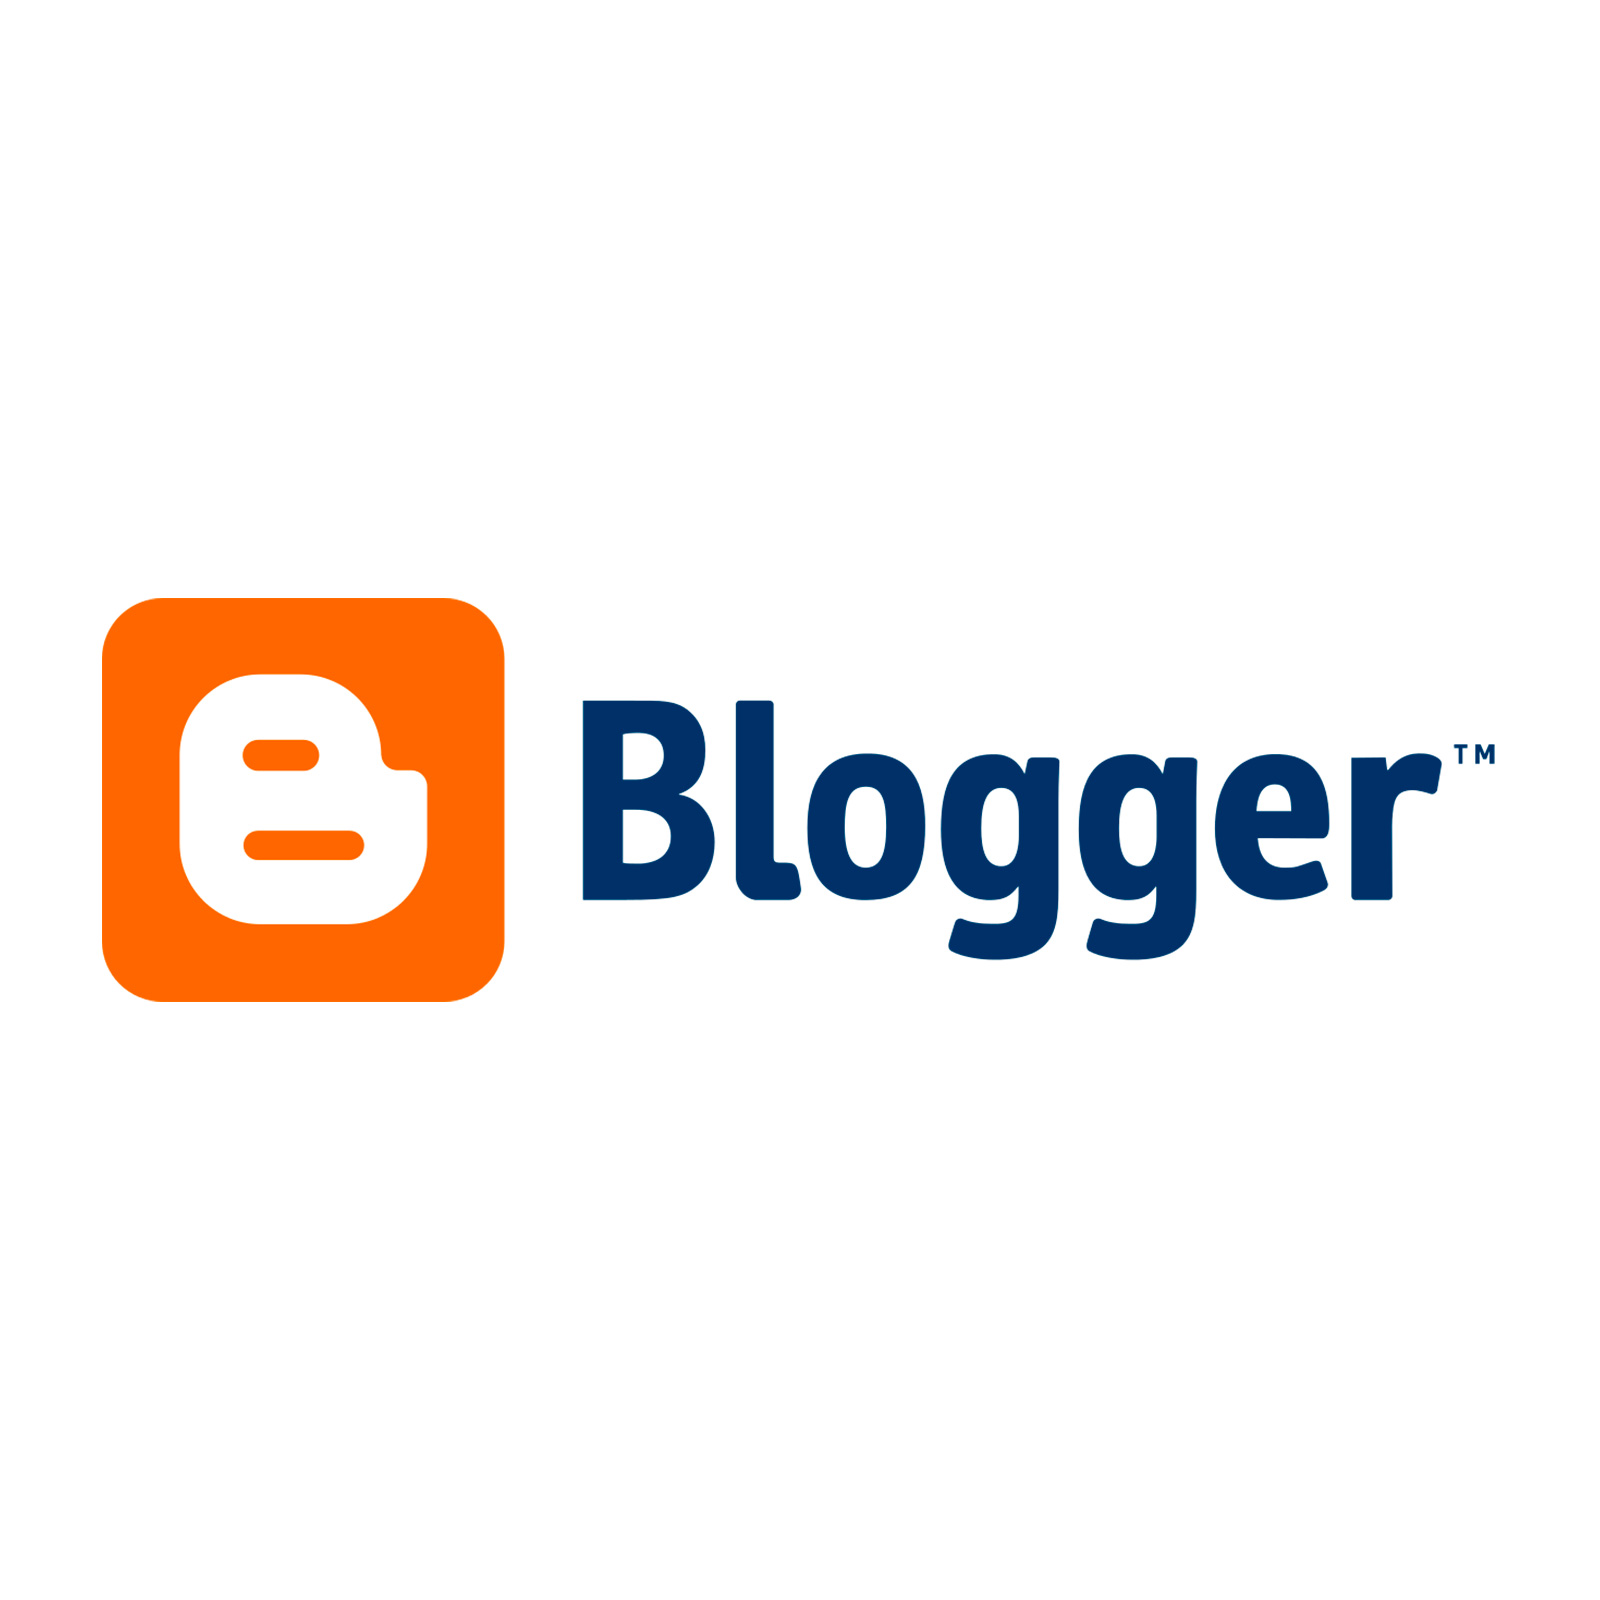 Blogger is a blog-publishing service that allows multi-user blogs with time-stamped entries. It was developed by Pyra Labs, which was bought by Google in 2003. The blogs are hosted by Google and generally accessed from a subdomain of blogspot.com.